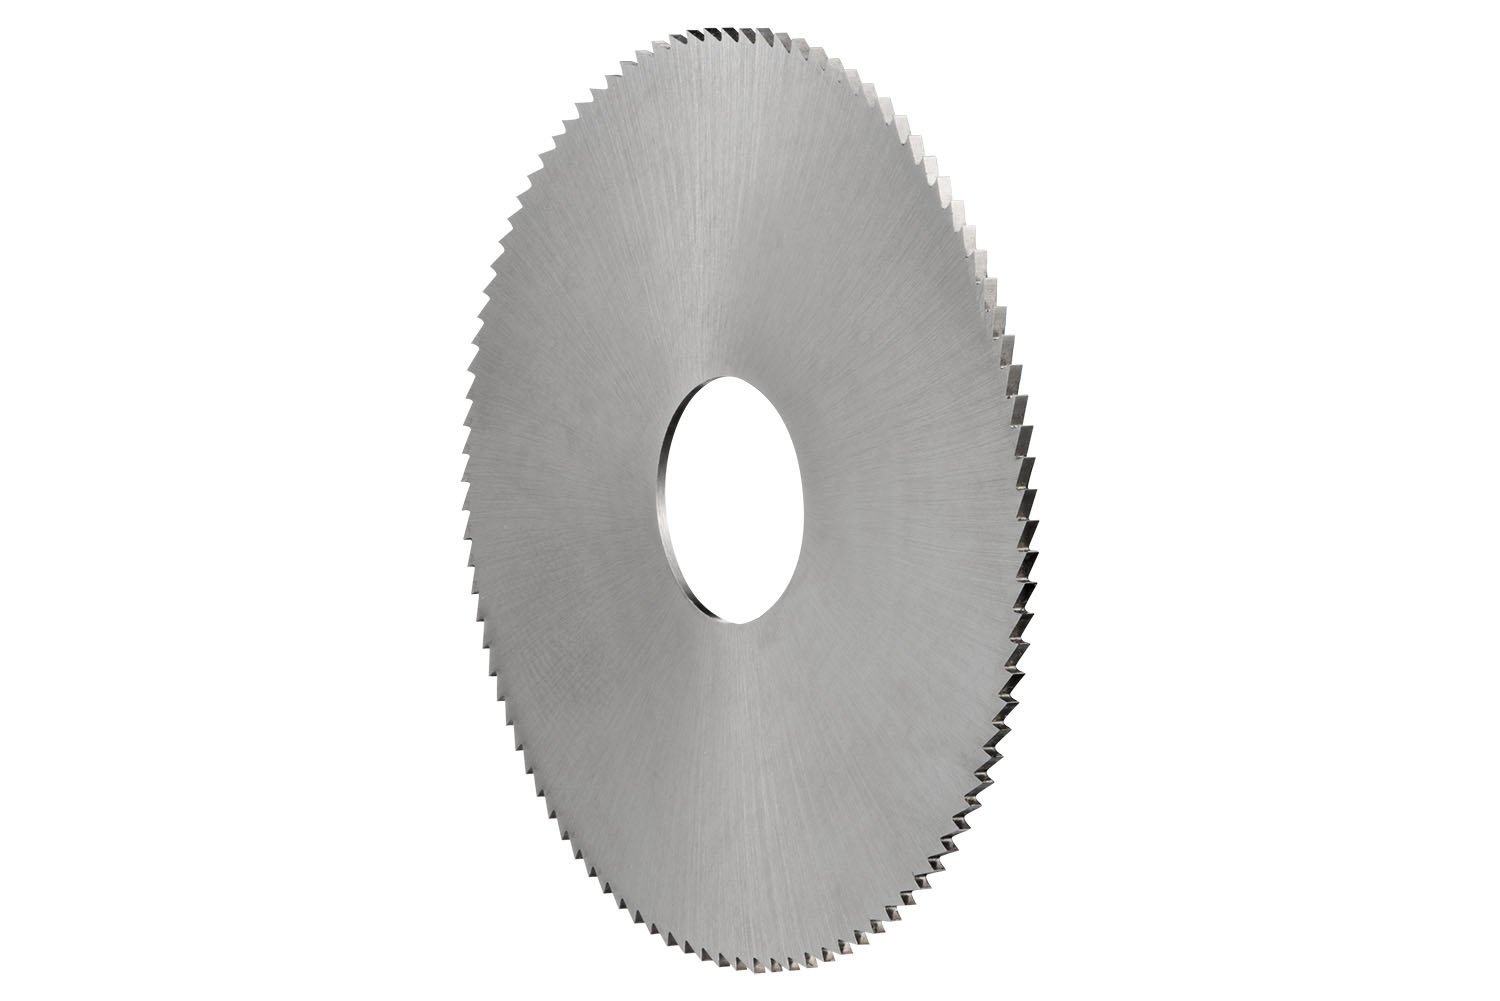 Dormer D747100.0X2.5 Metal Slitting Saw Fine, Bright Coating, High Speed Steel, Diameter 100 mm, width 2.5 mm, Hole Diameter 22 mm